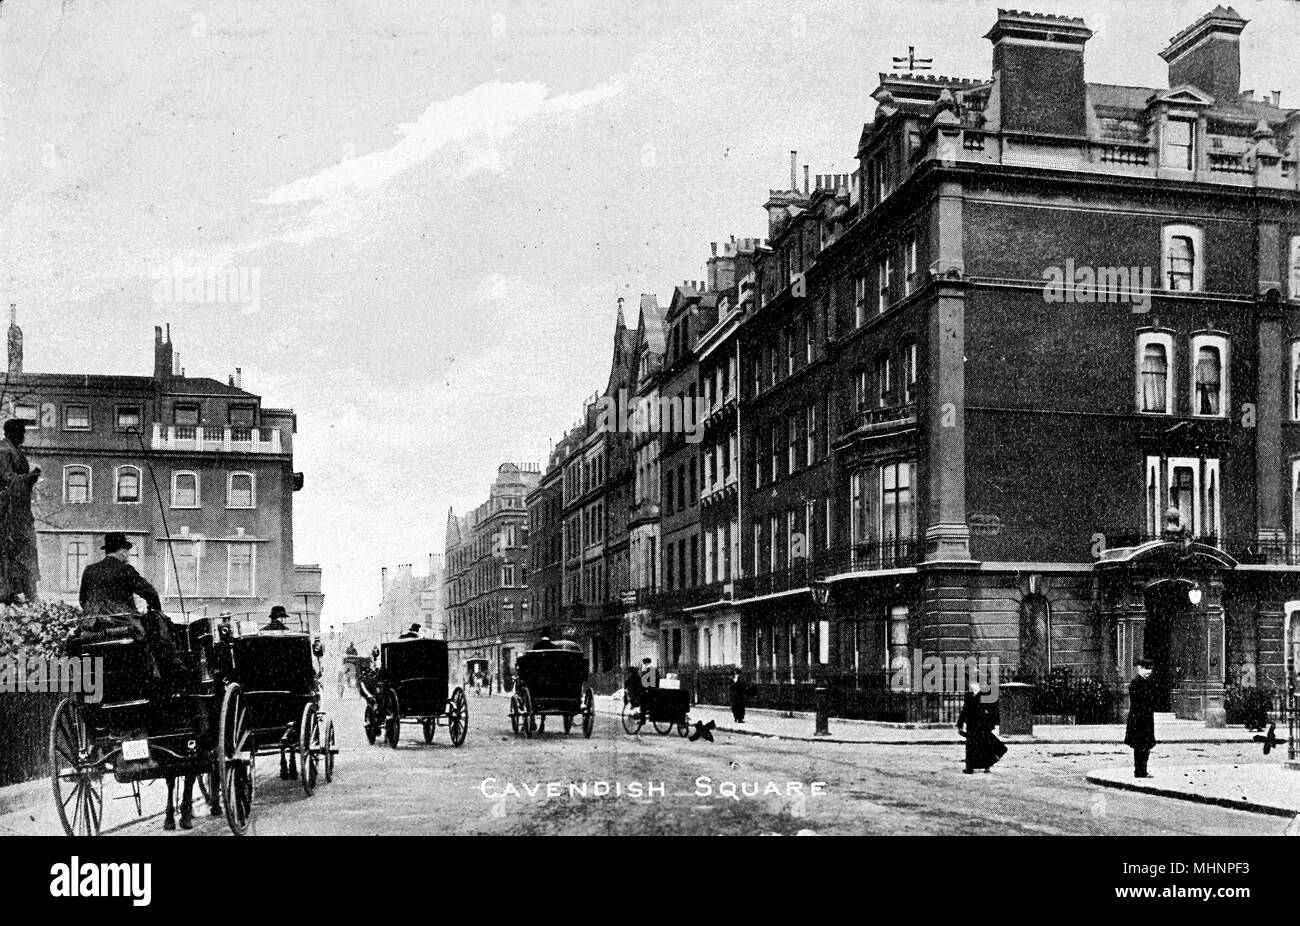 Cavendish Square, London.      Date: circa 1905 - Stock Image